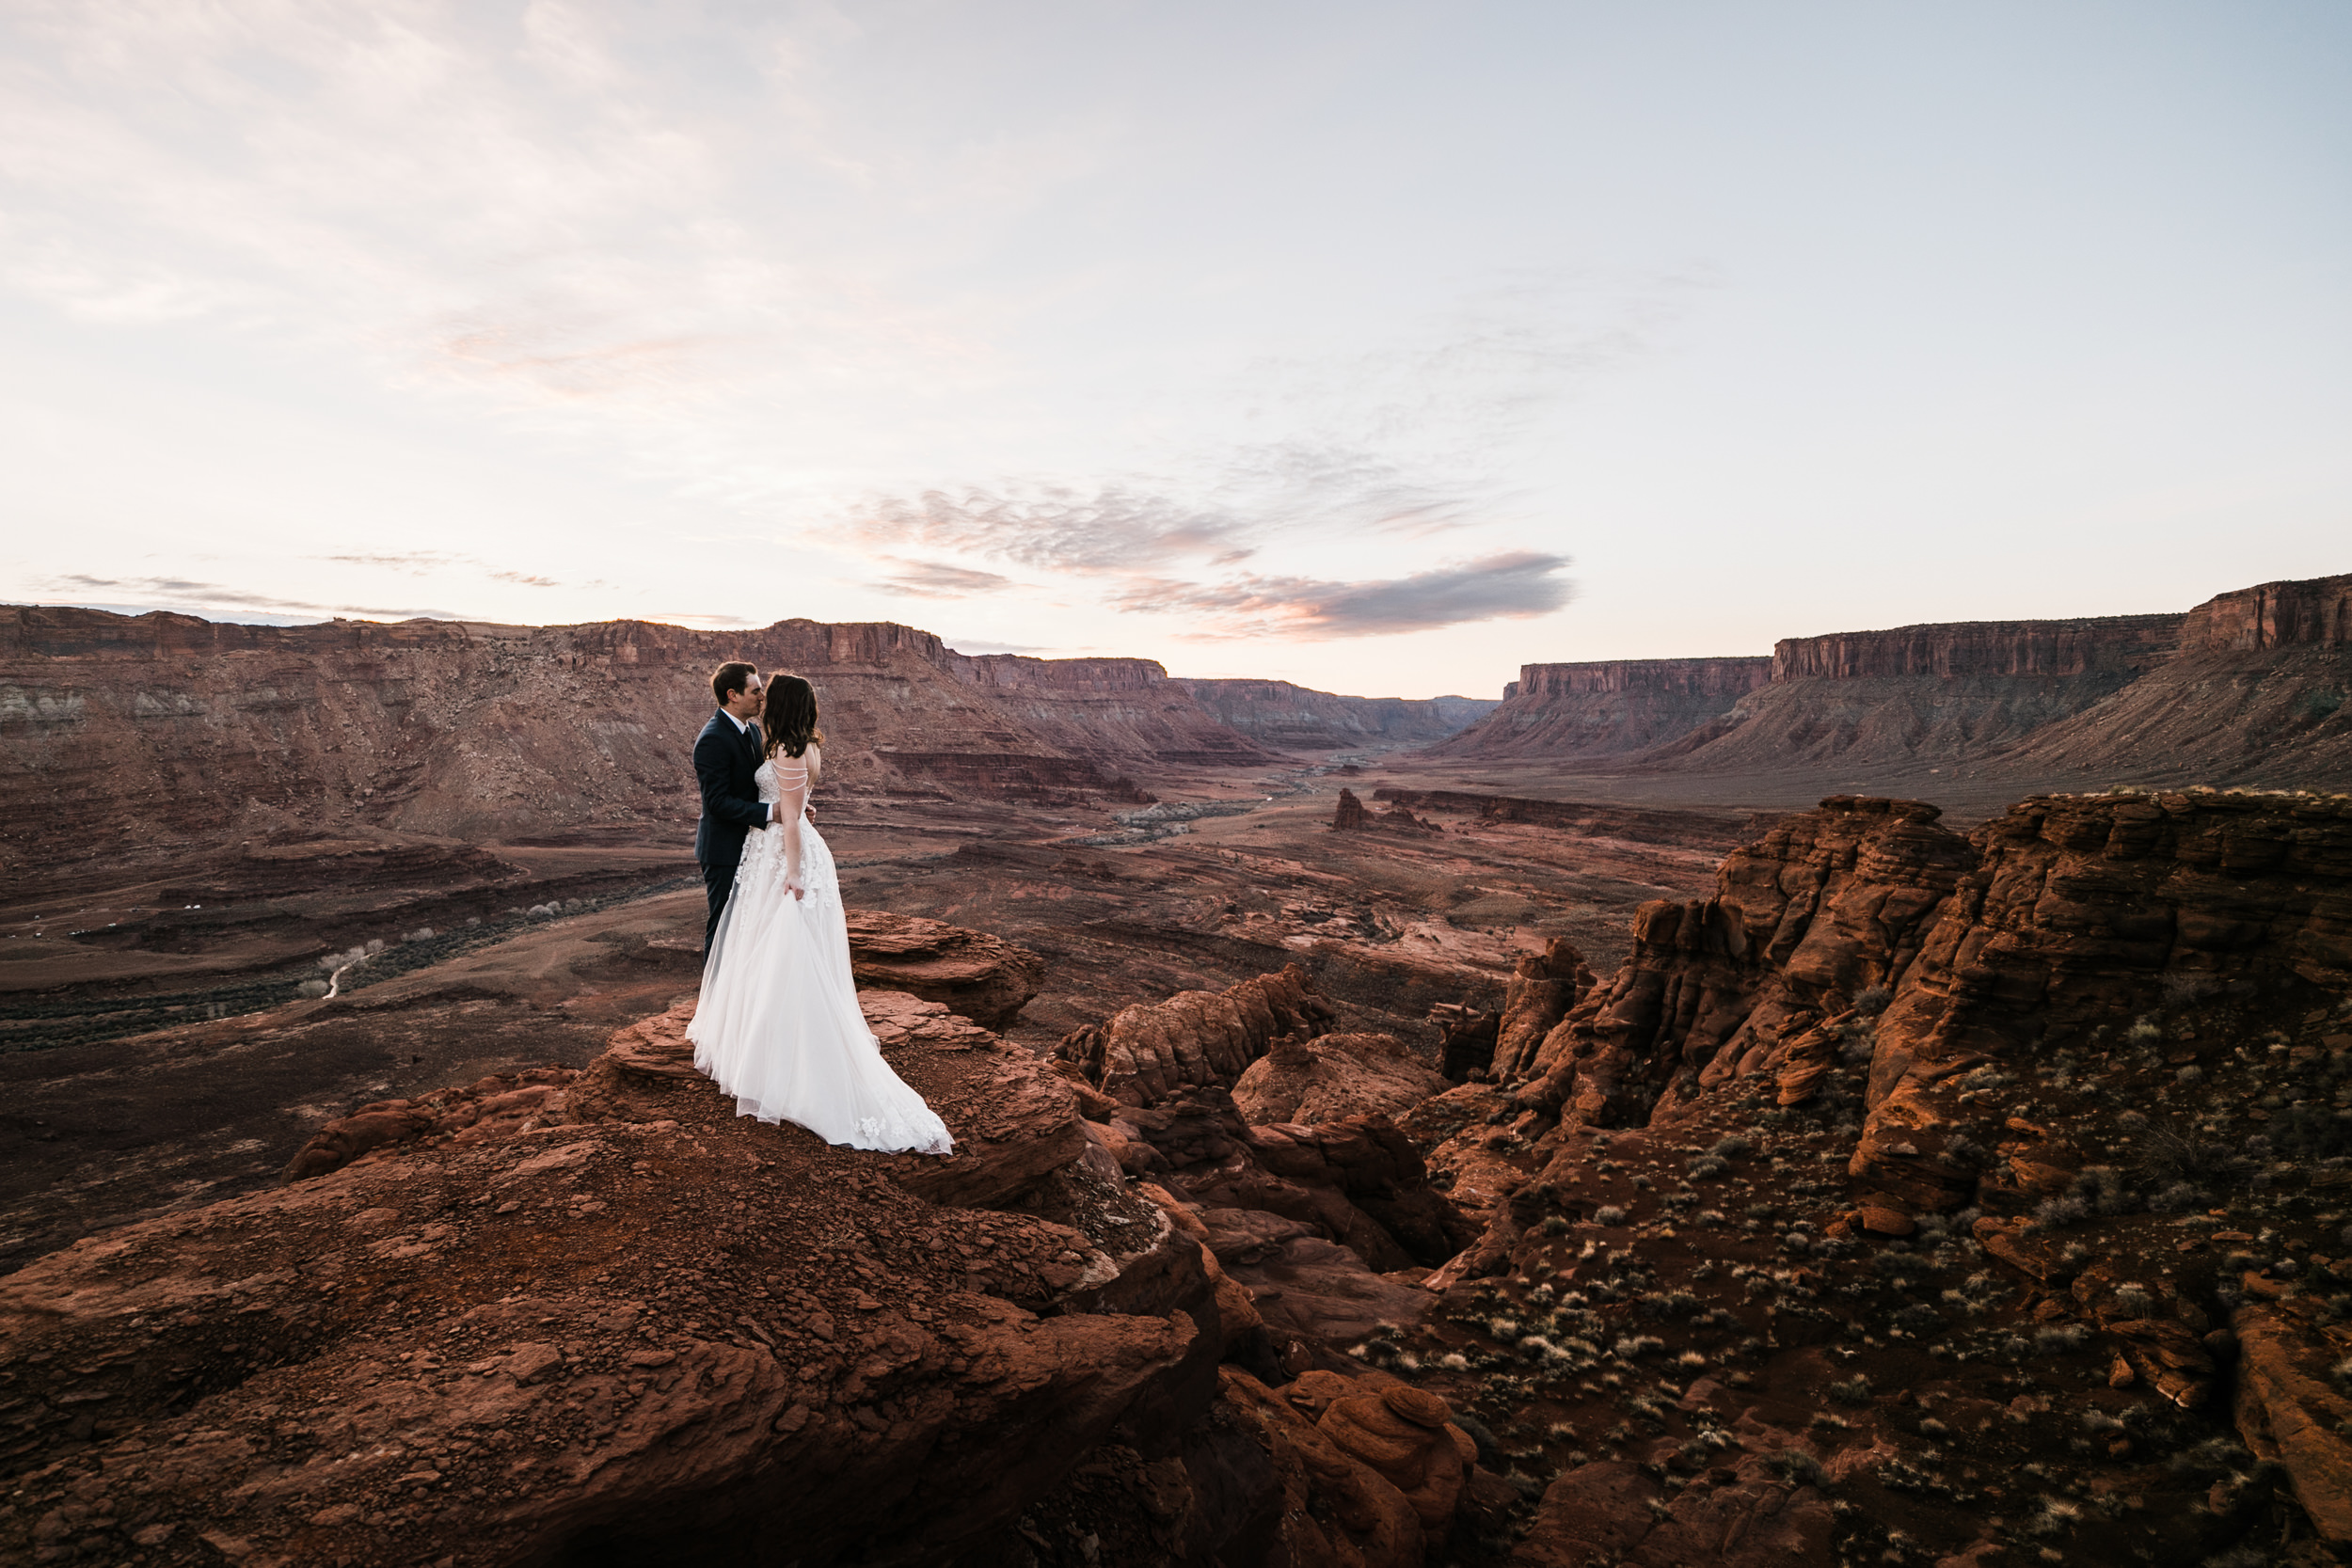 The views in the desert make for amazing wedding photos. Moab, Utah sunrise before their wedding in arches national park.